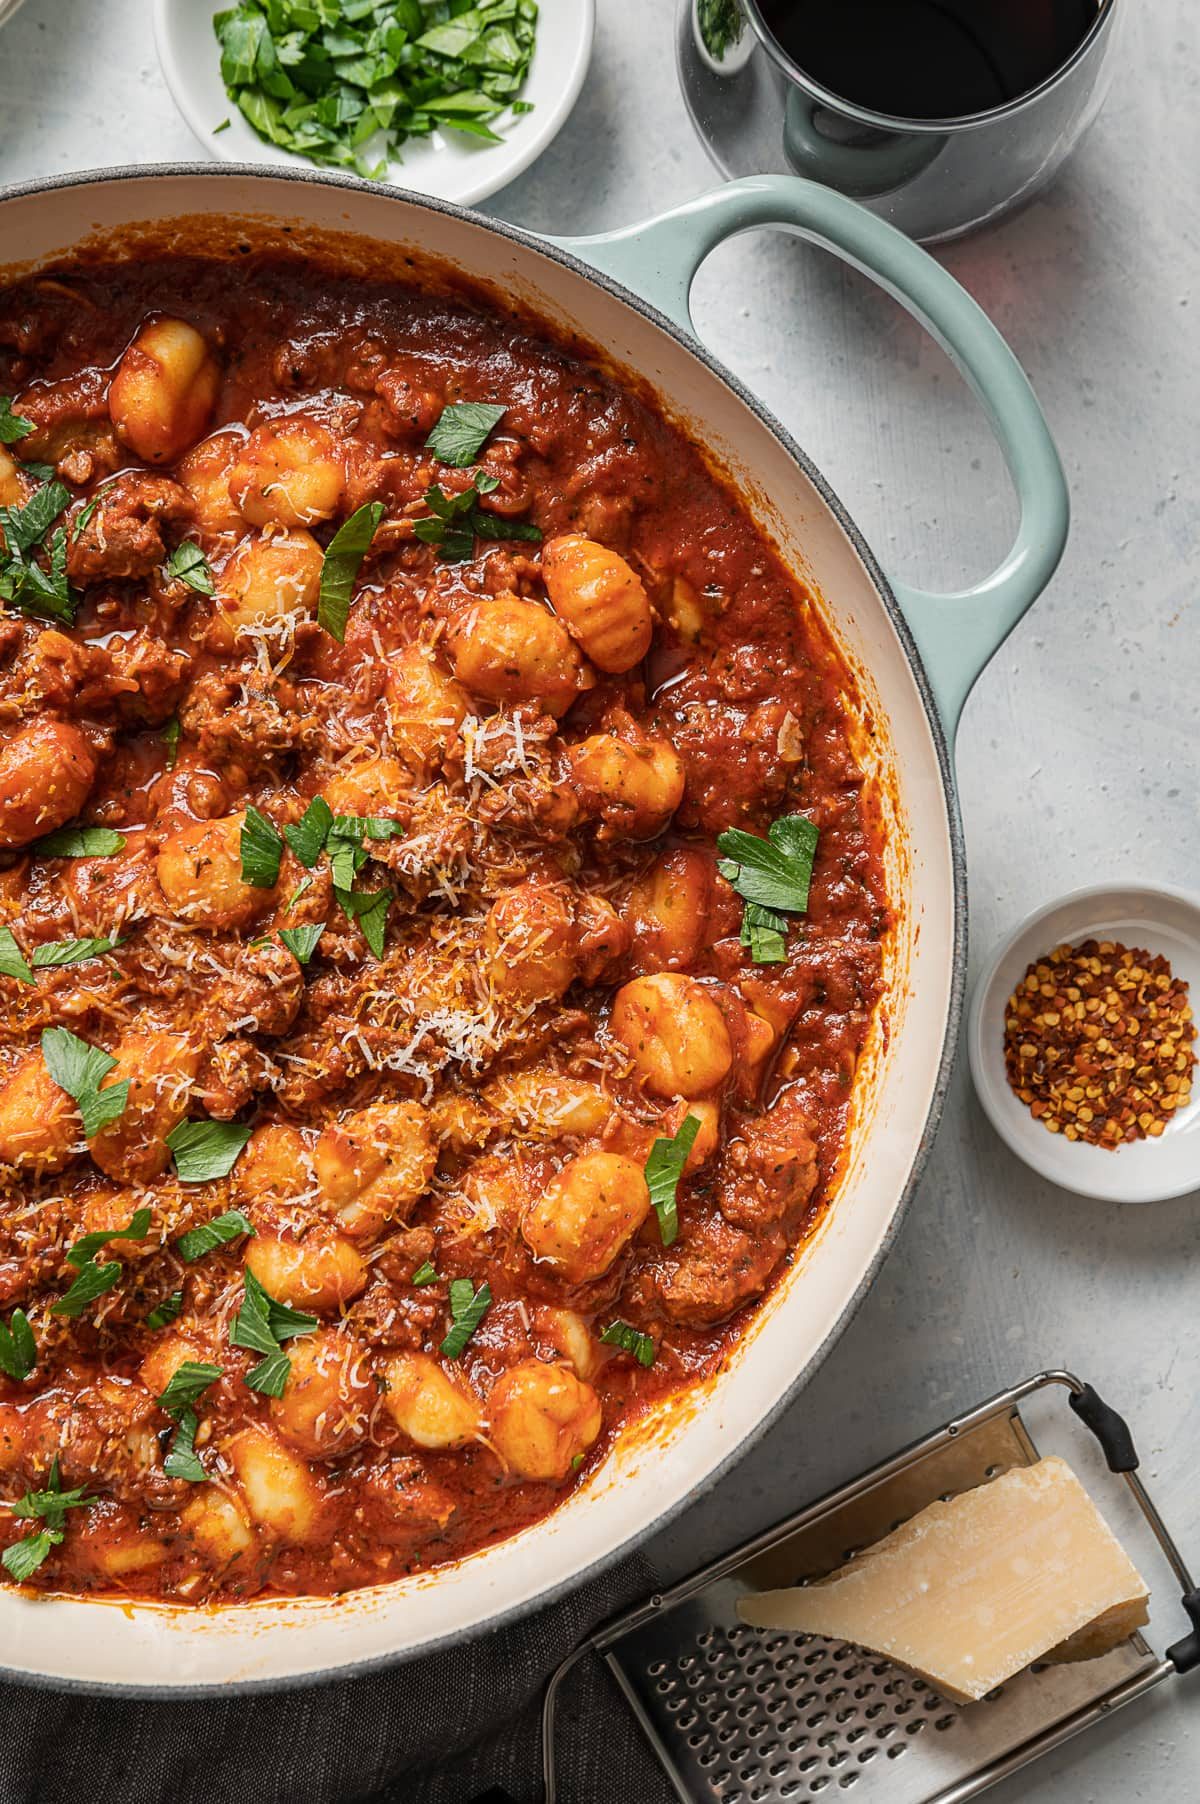 large aqua pan with sausage and gnocchi with red tomato sauce, glasse of red wine, bowl of green parsley, bowl of red pepper flakes, grater and chunk of parmesan cheese